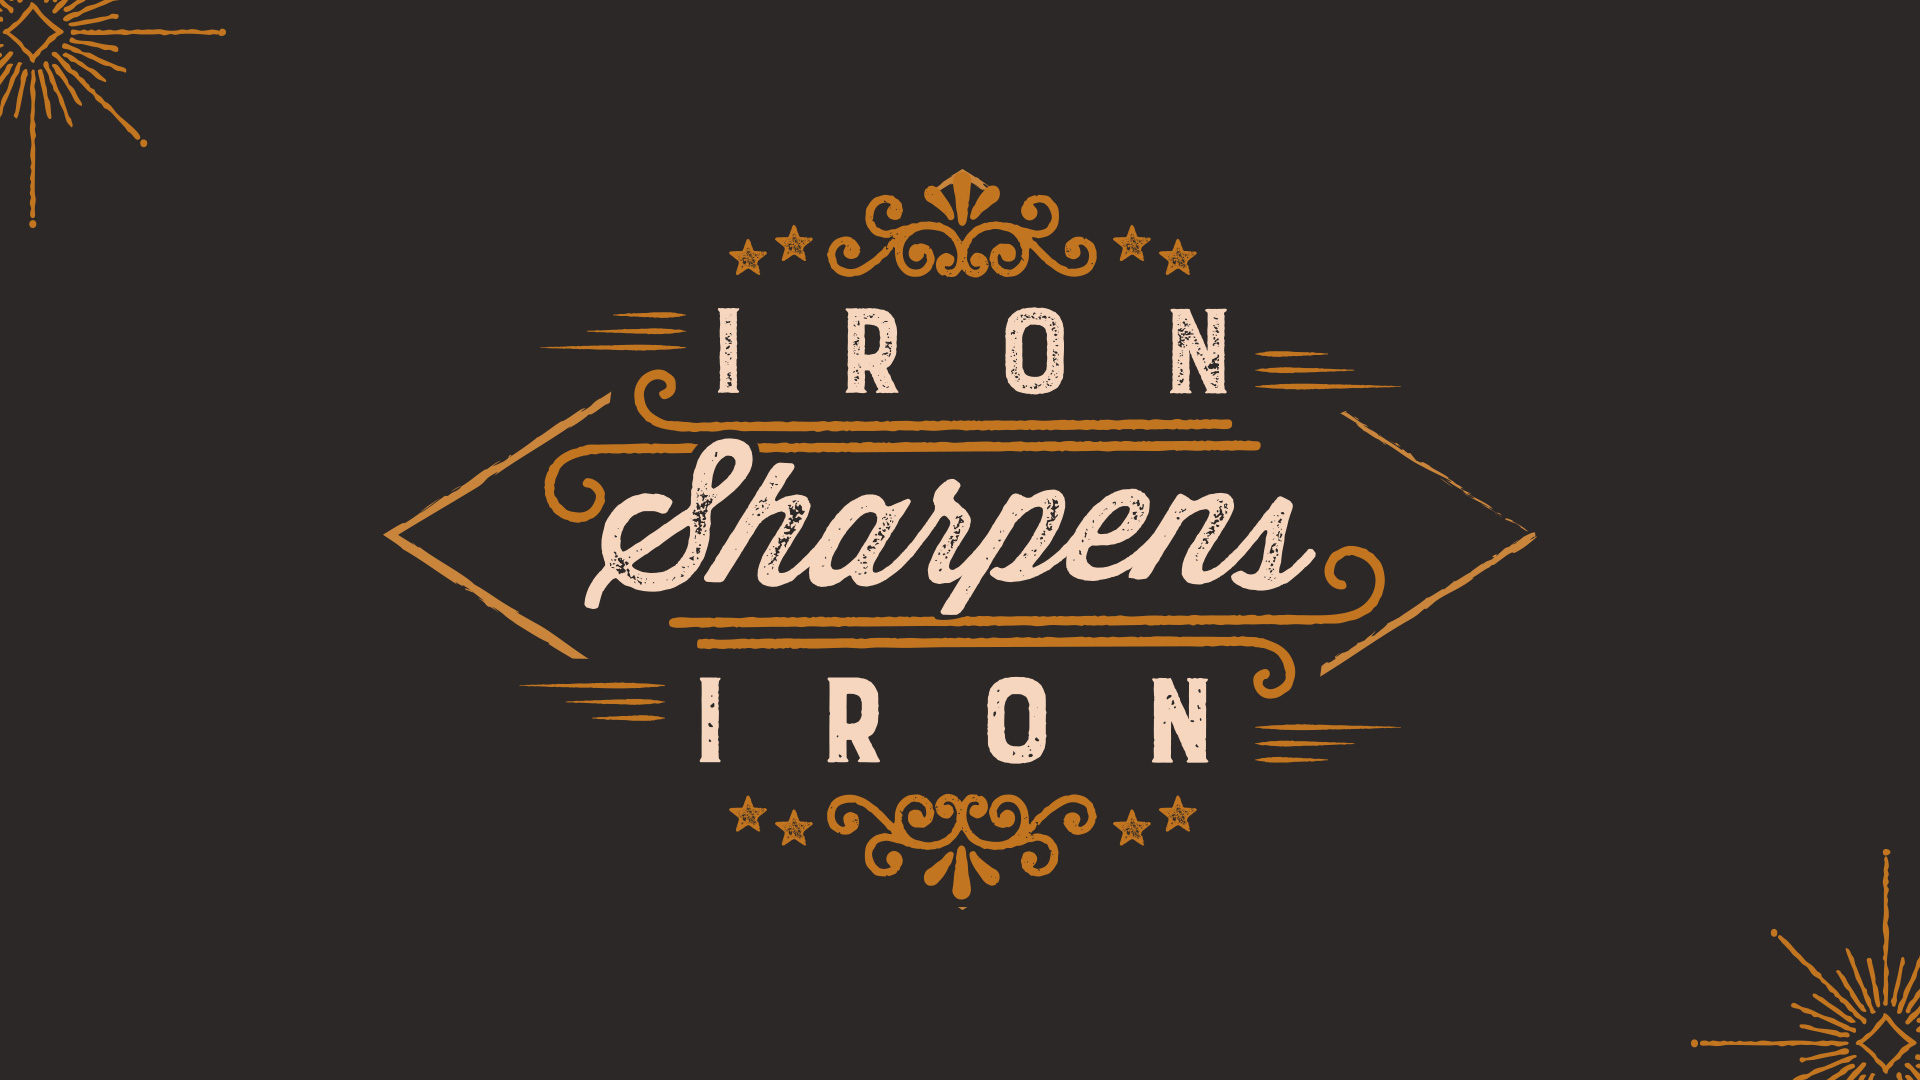 Iron Sharpens Iron Title Image